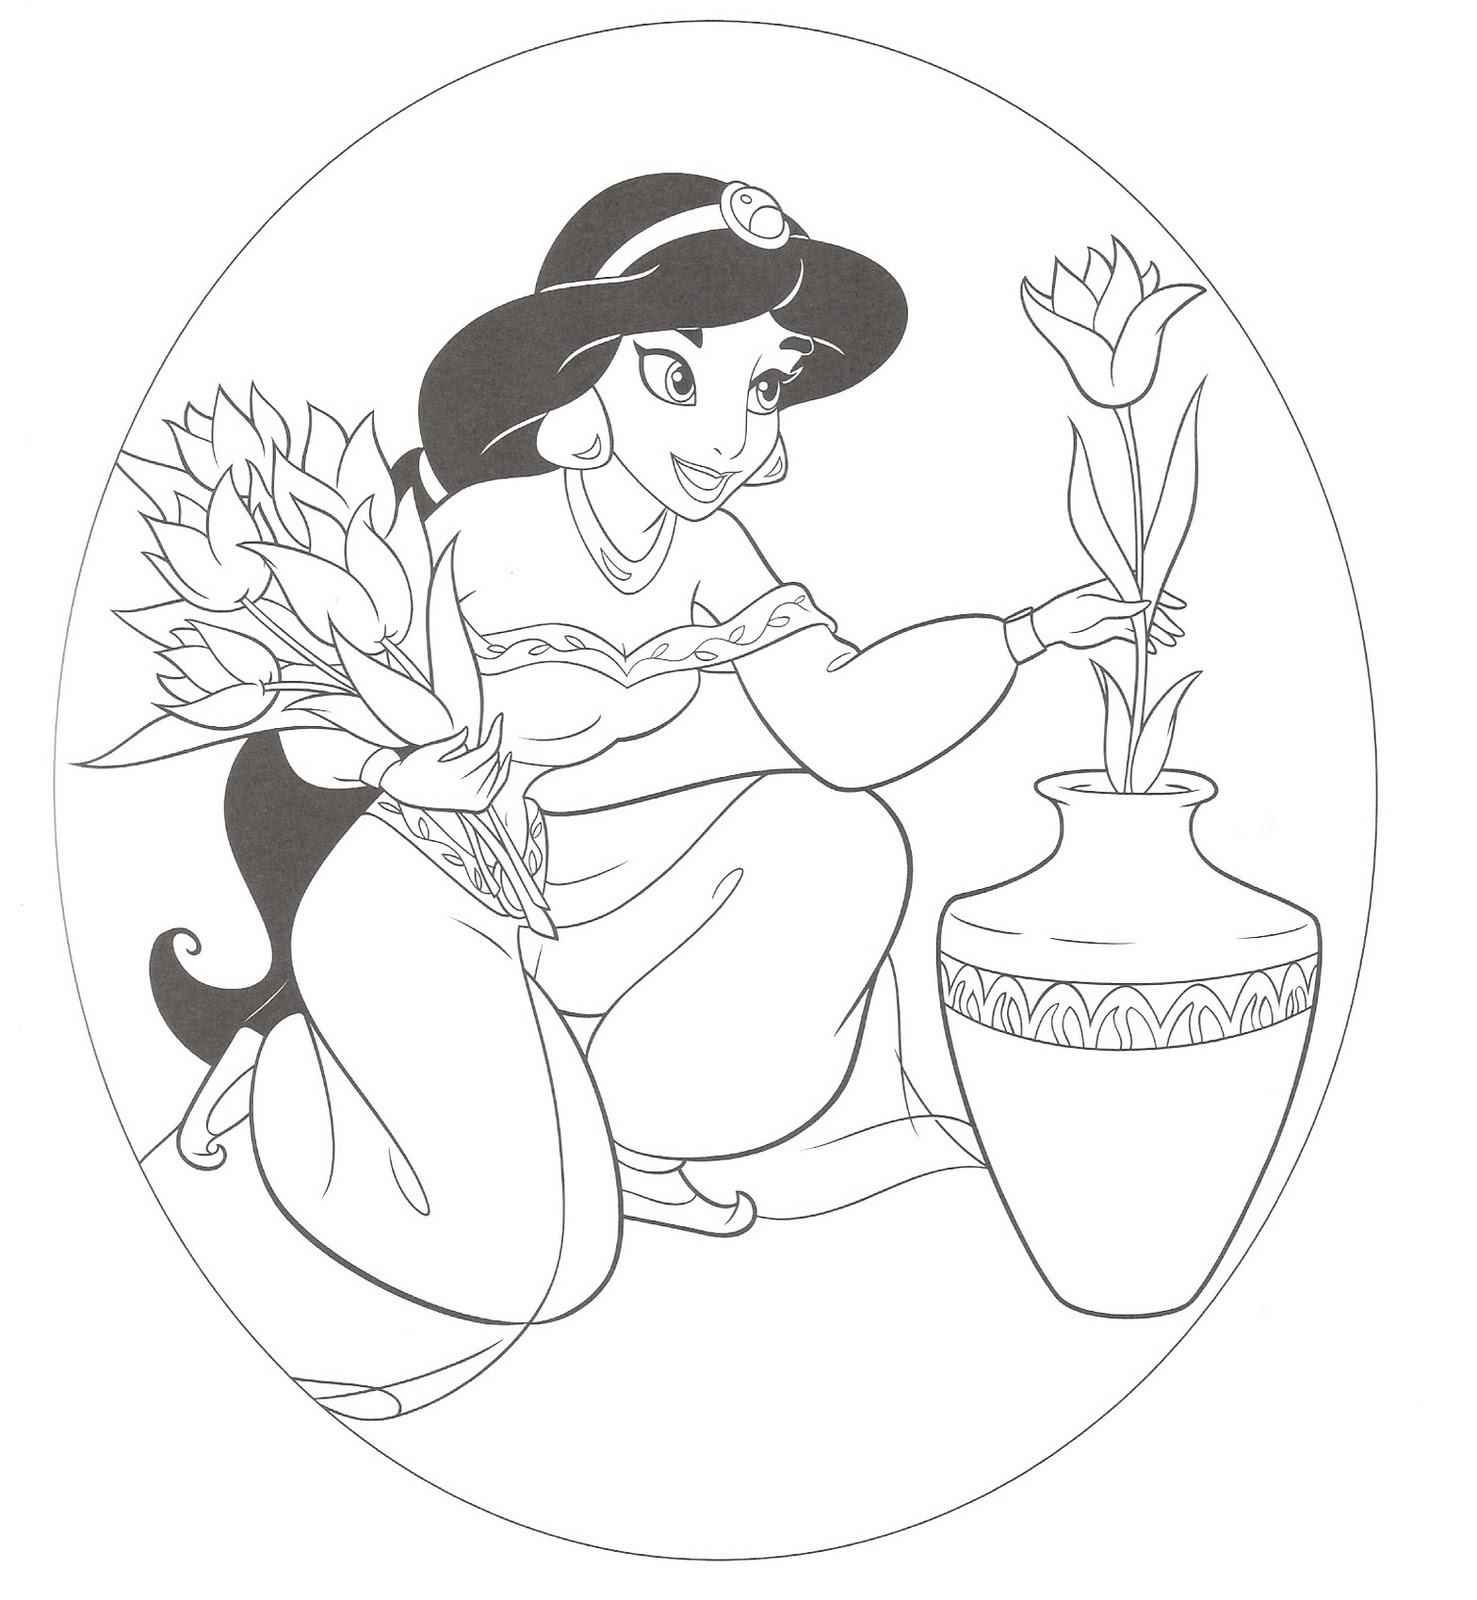 Disney Princess Coloring Pages For Kids Disney Princess Coloring Pages Free Coloring Sheets